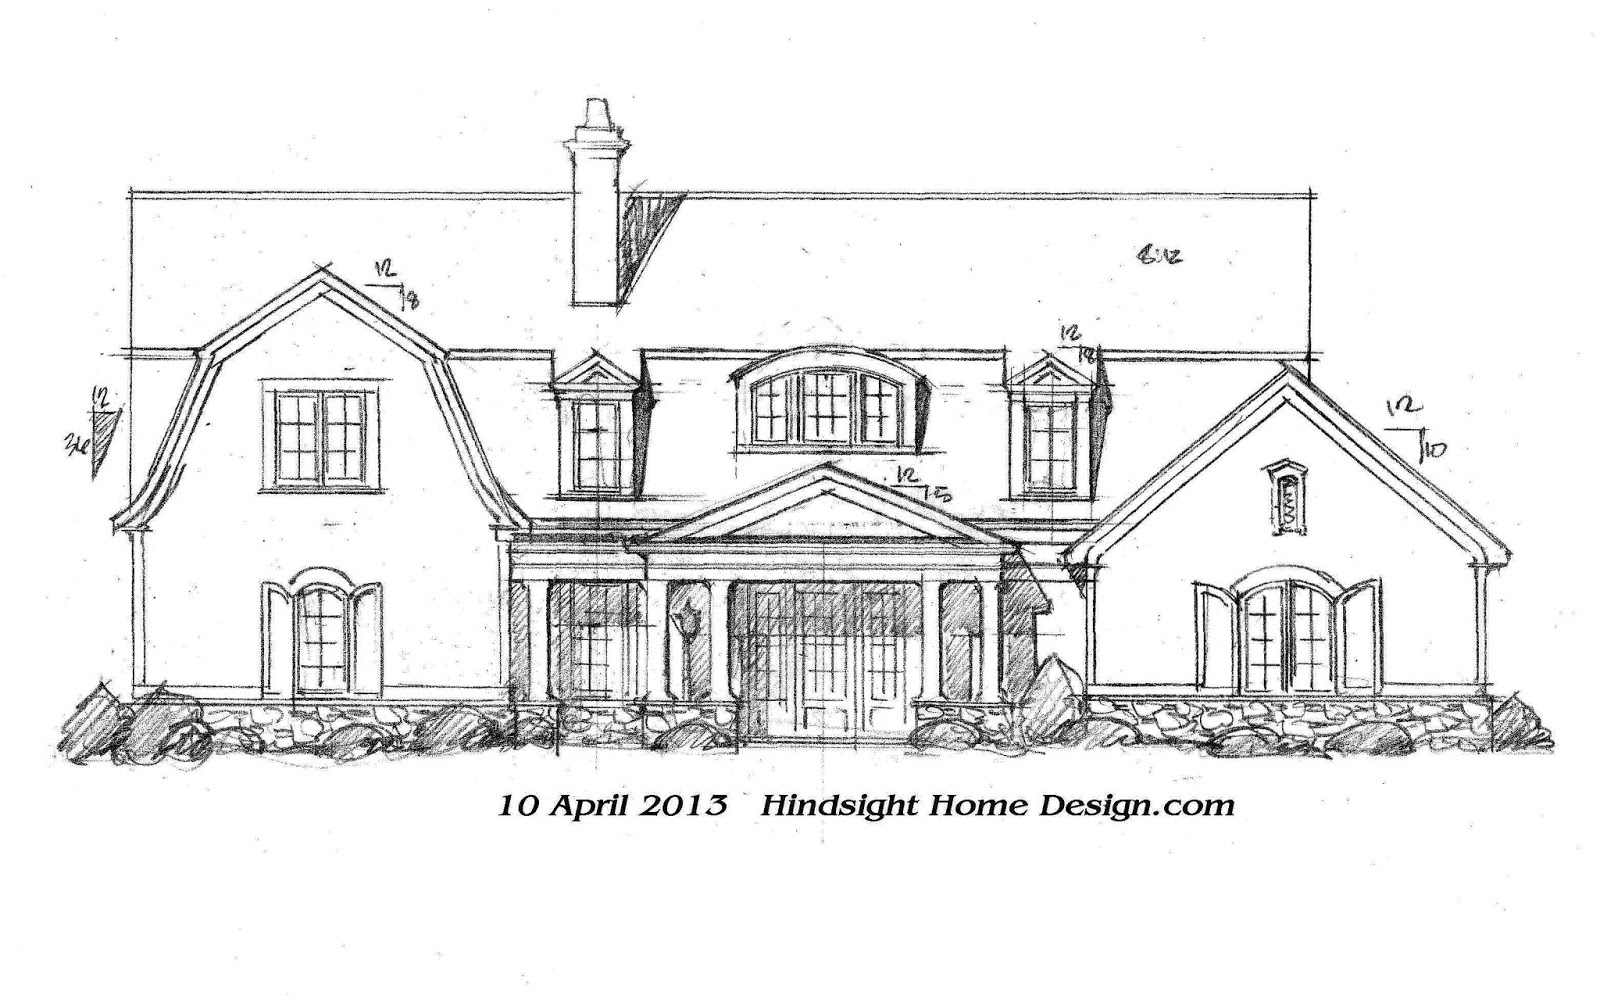 Hindsight home design for House sketches from photos